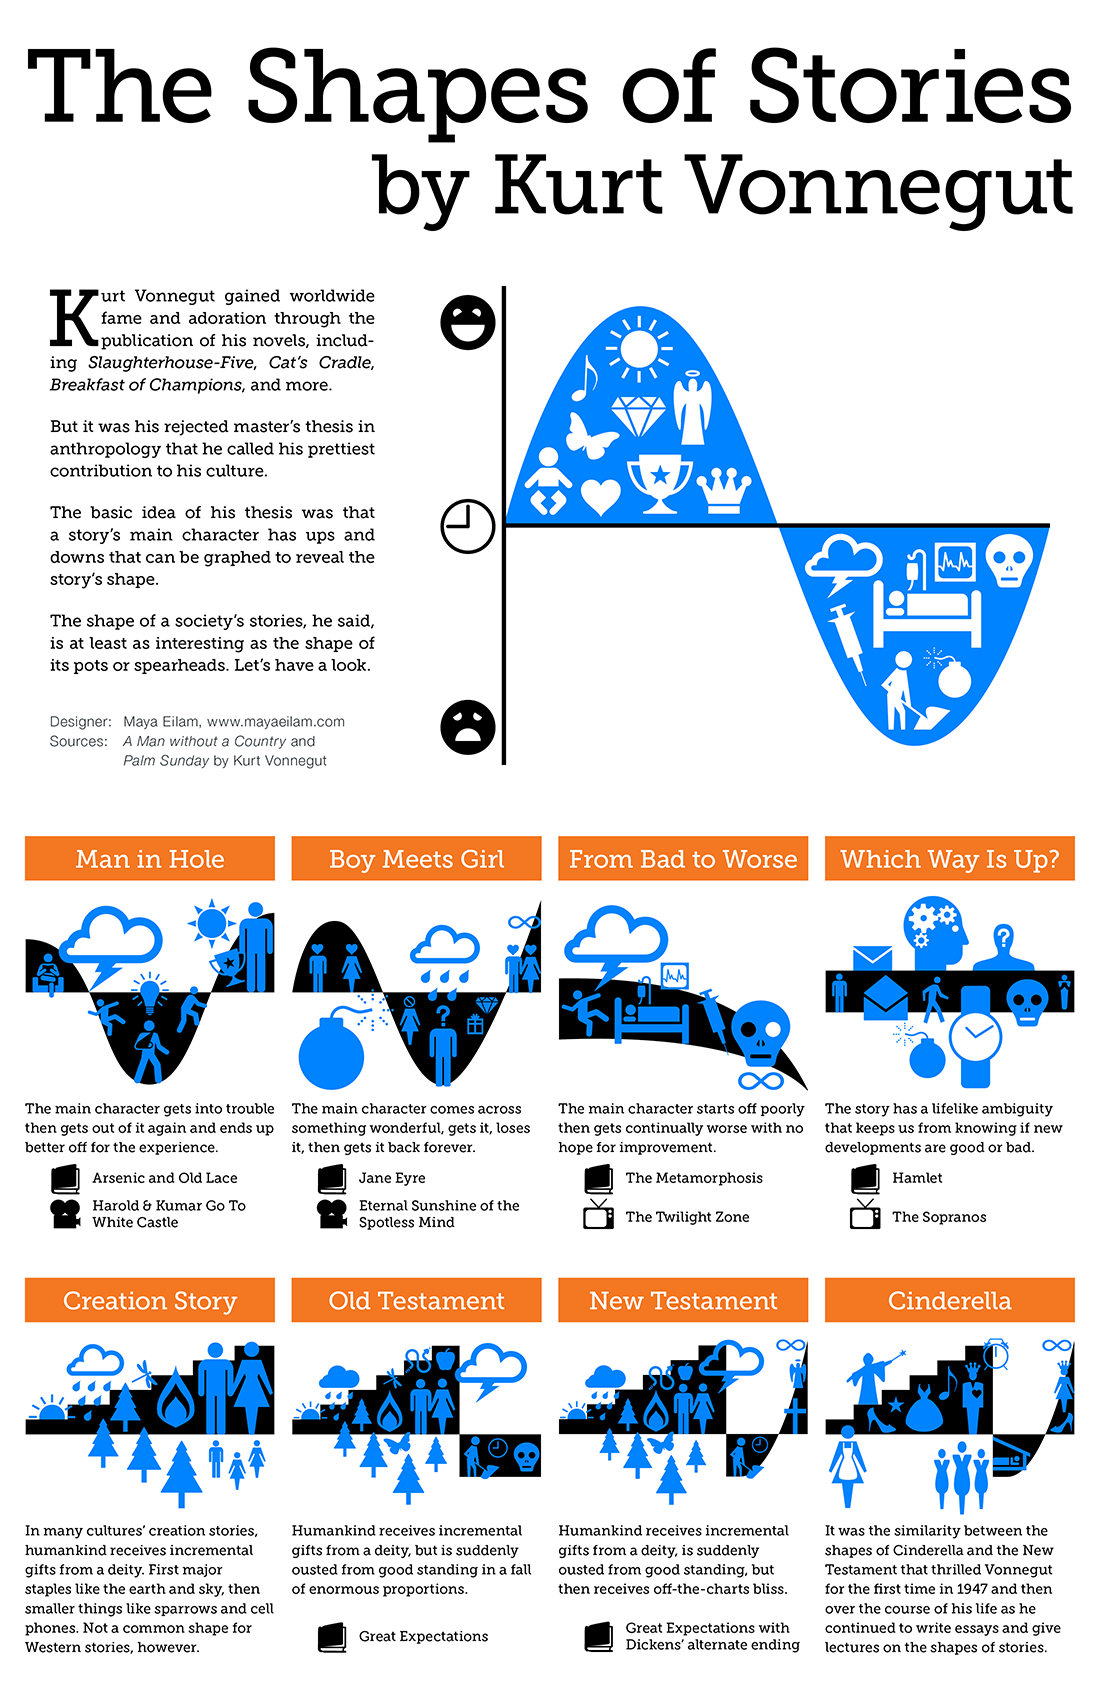 Kurt Vonnegut: The Shape of Stories [Infographic]